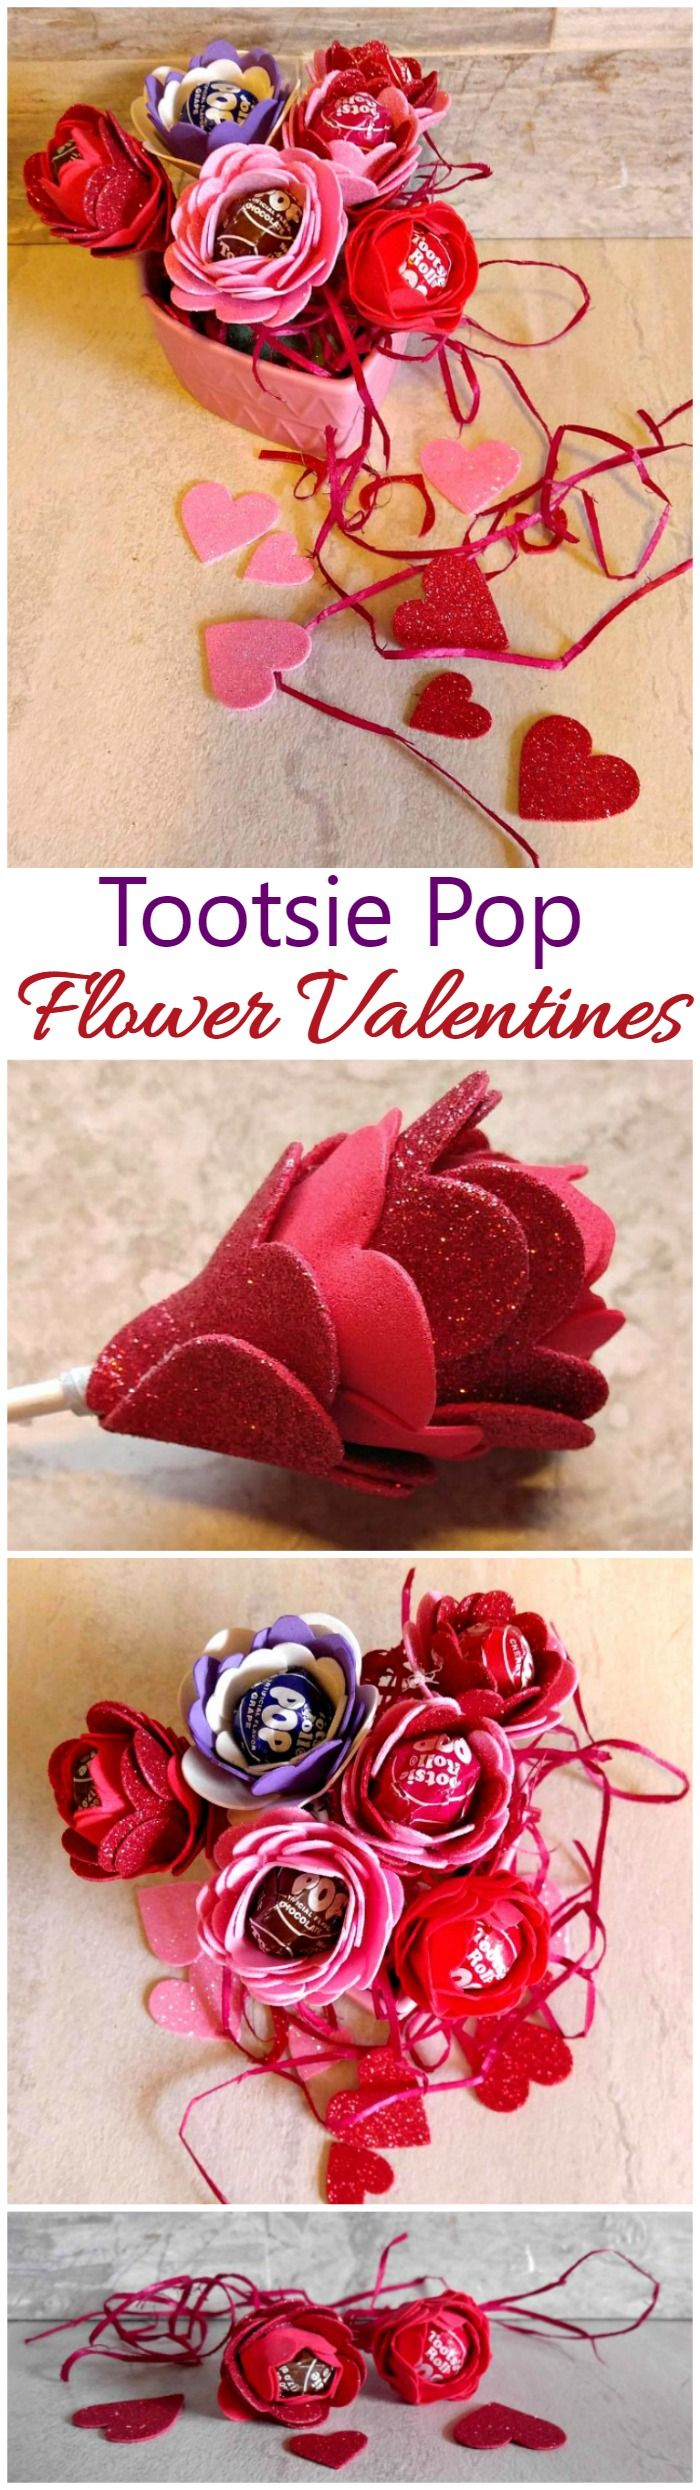 These Tootsie Pop Flower Valentines are as